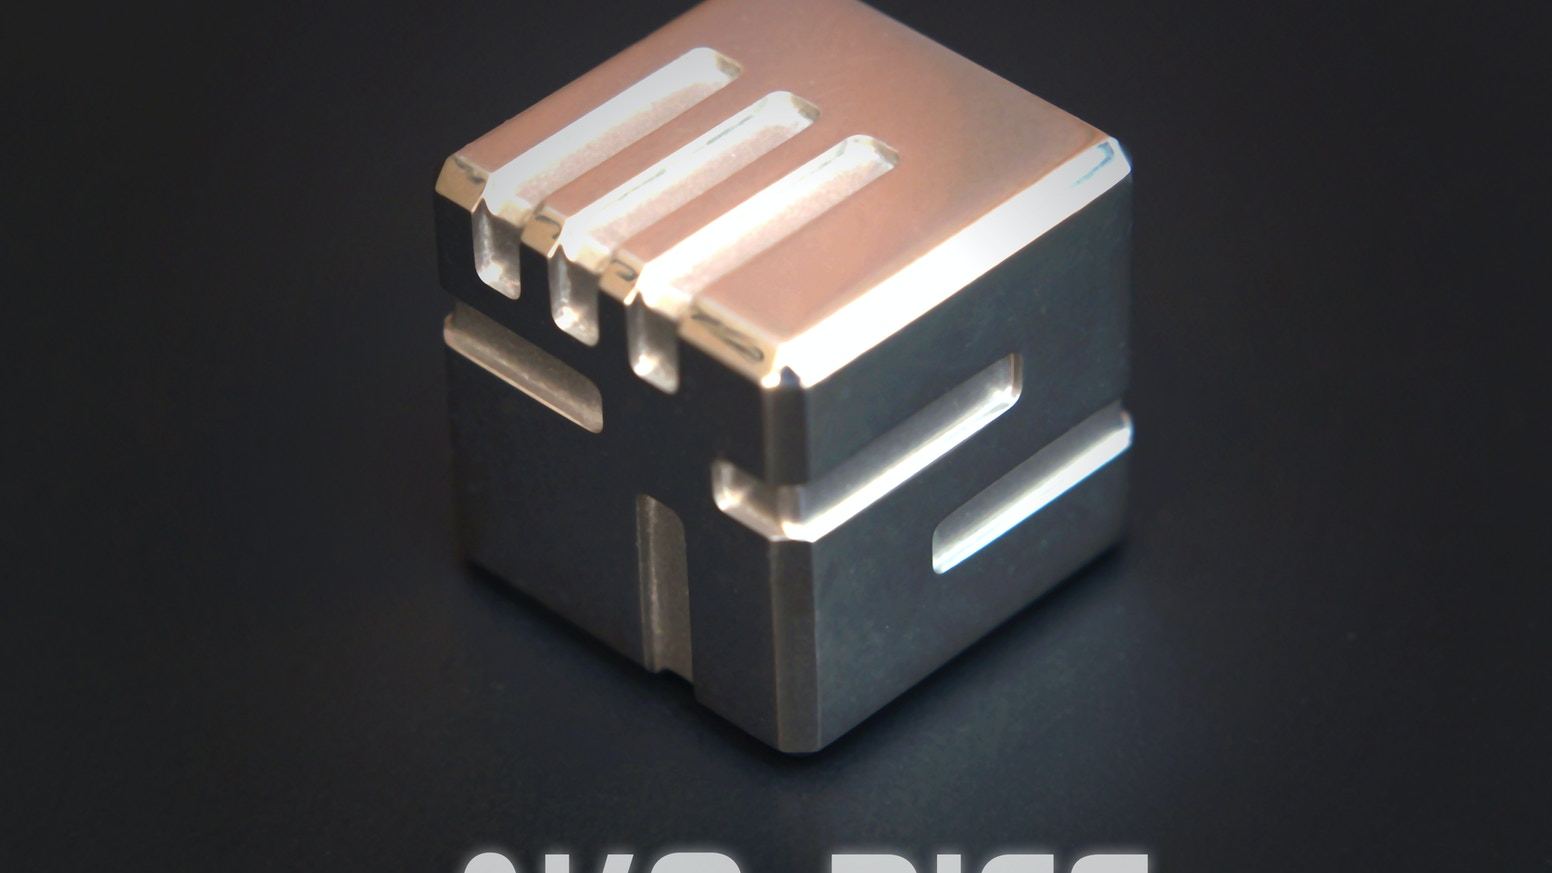 AKO (Another Kind of) Dice - The complete redesign custom metal dice.